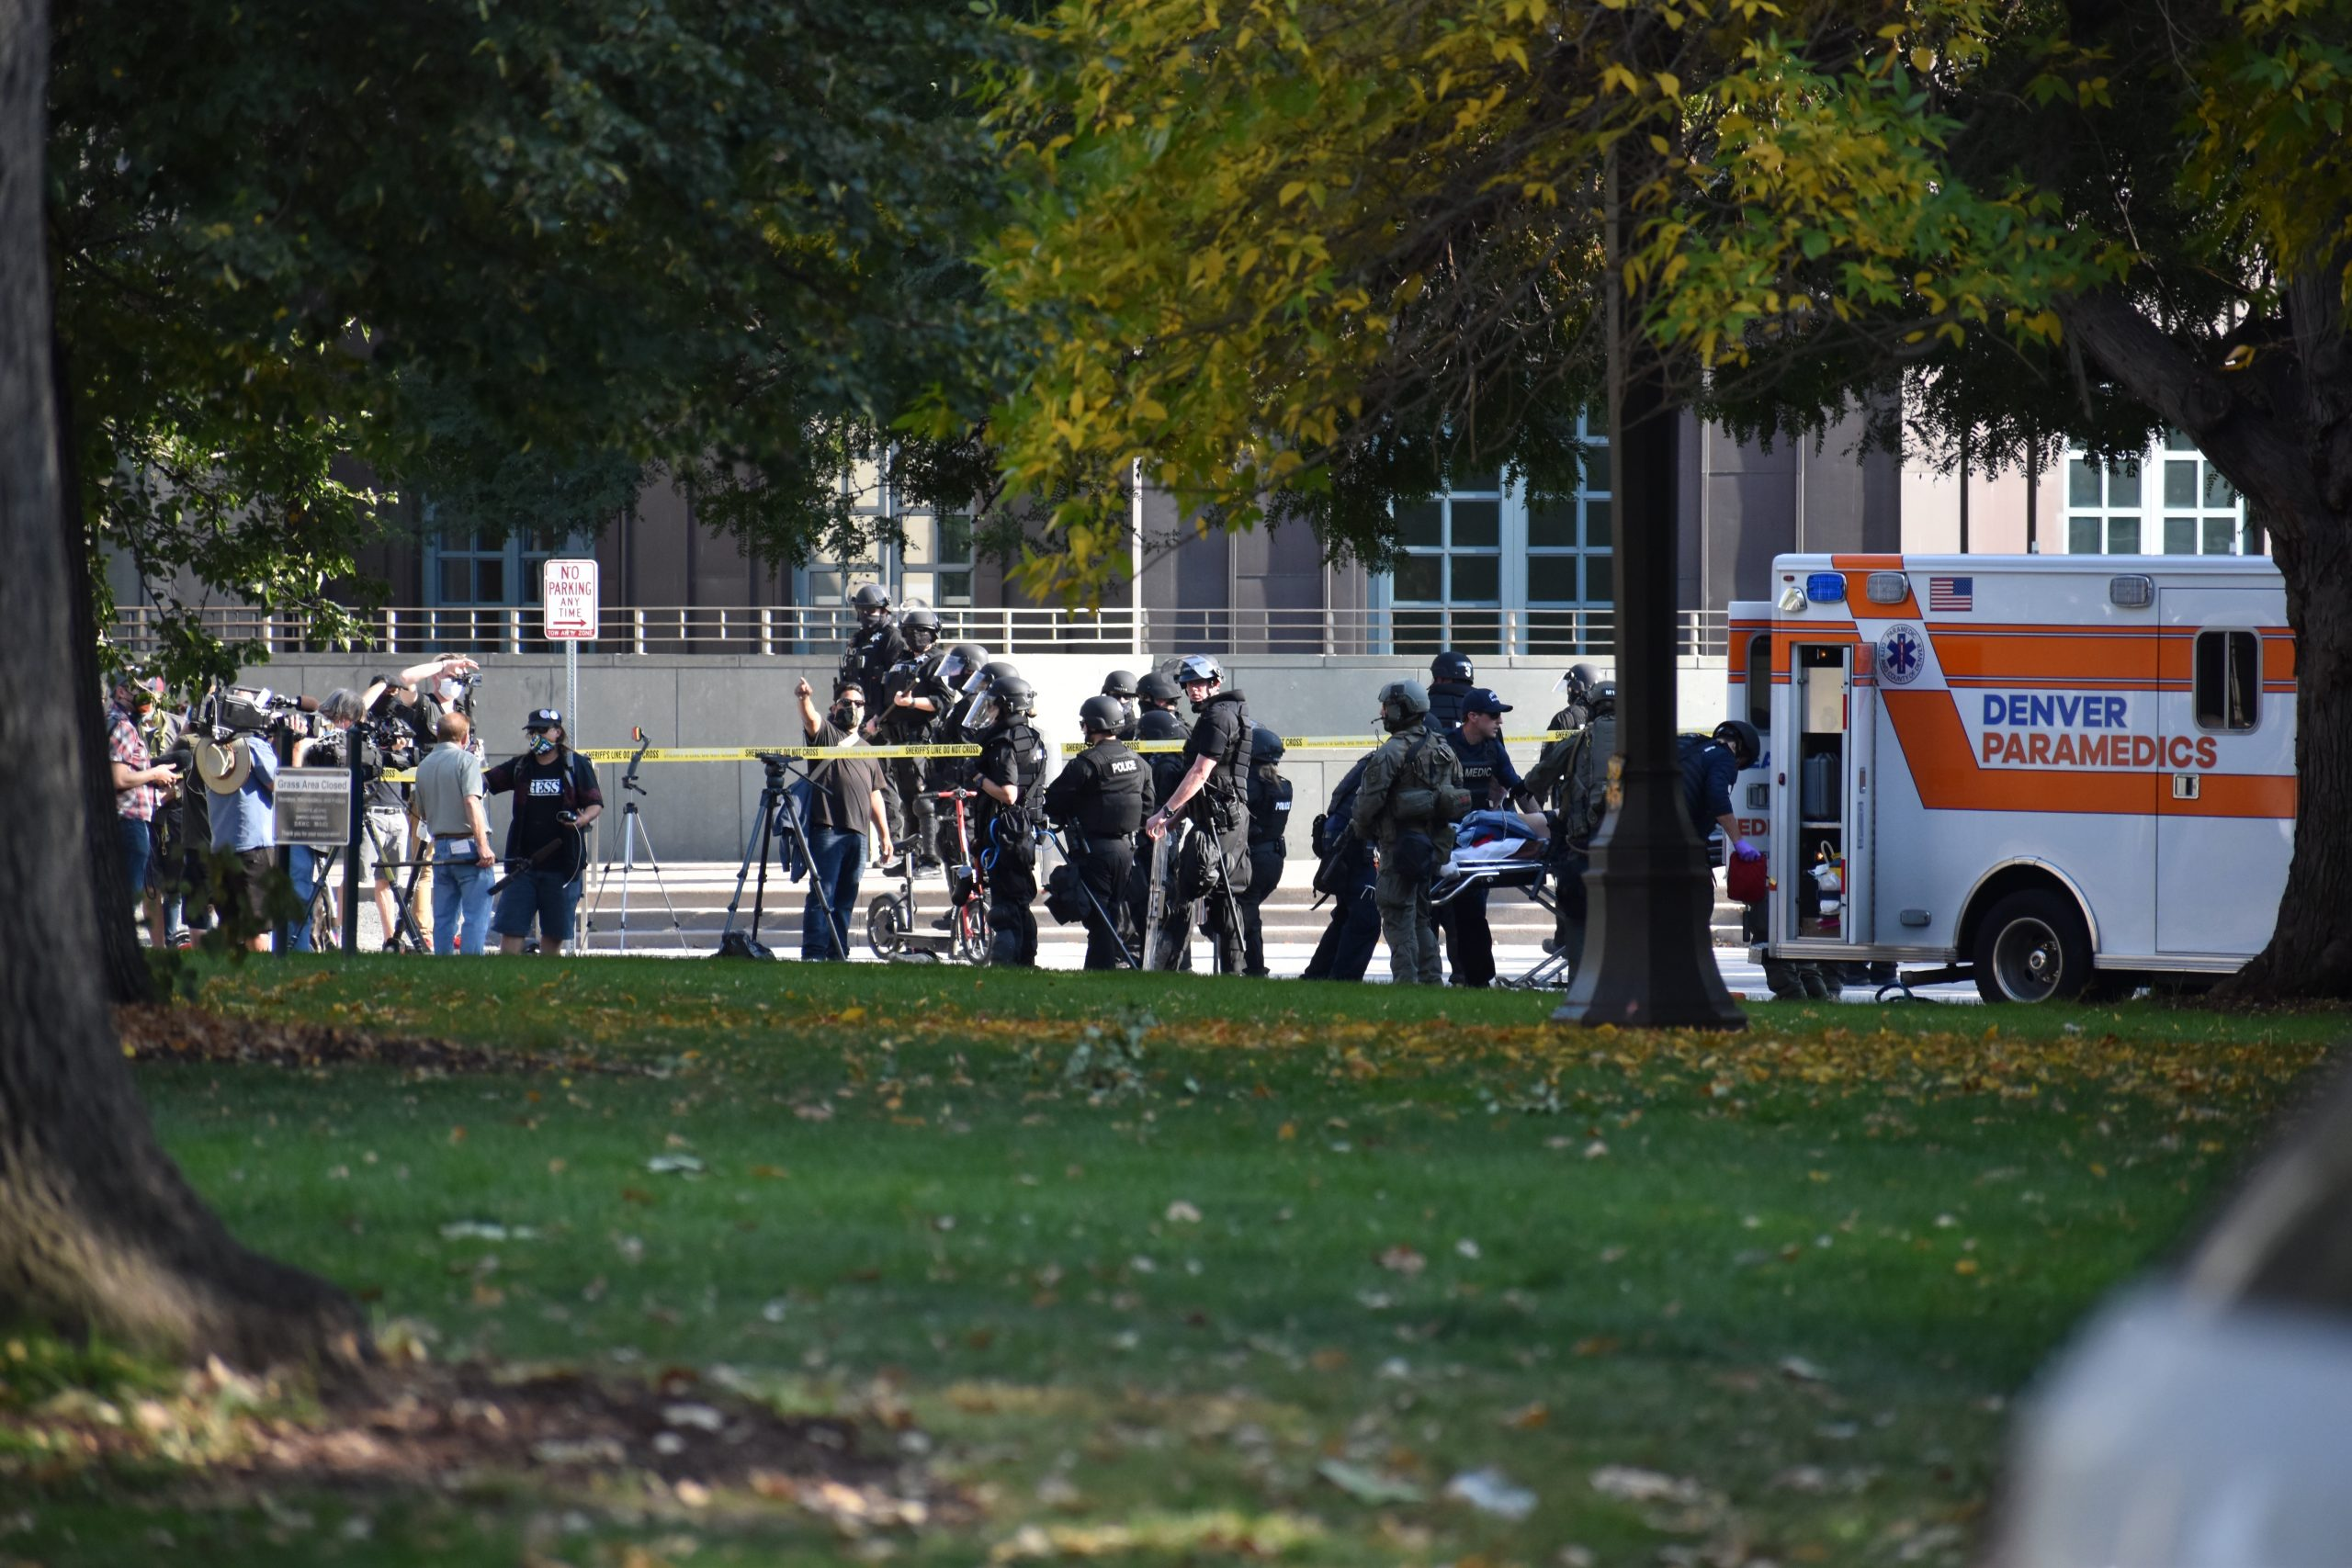 Man shot and killed after 'Patriot Muster' in downtown Denver